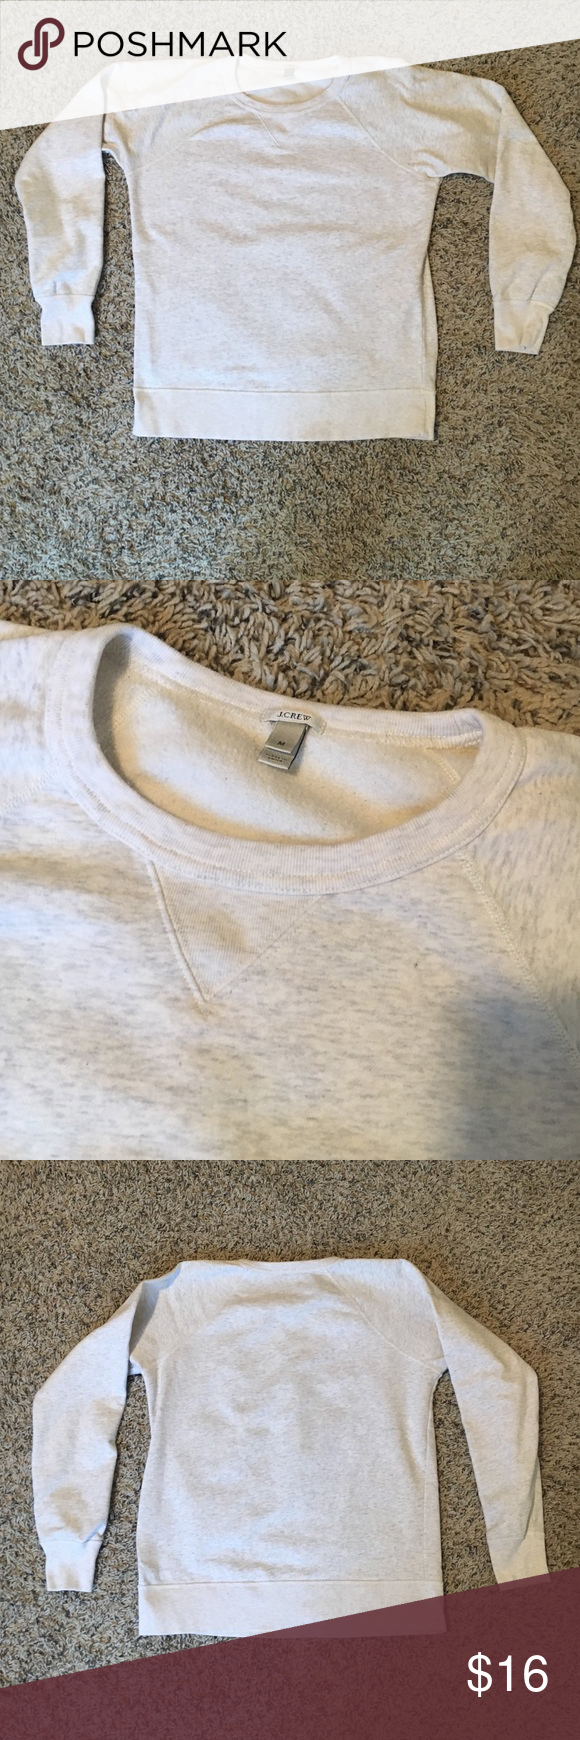 J. Crew Basic Light Gray Sweater Sz:M J. Crew Basic Light Gray Sweater Sz:M. Asking for my mother in law... This is shades of white and gray mixed so it appears a very light gray. V-stitched into the front collar. (100% cotton) machine wash. There is a very light brown makeup stain on the back where my finger is pointing. I washed it and it mostly came out, but there is one spot still left. Very faint though. J. Crew Sweaters Crew & Scoop Necks